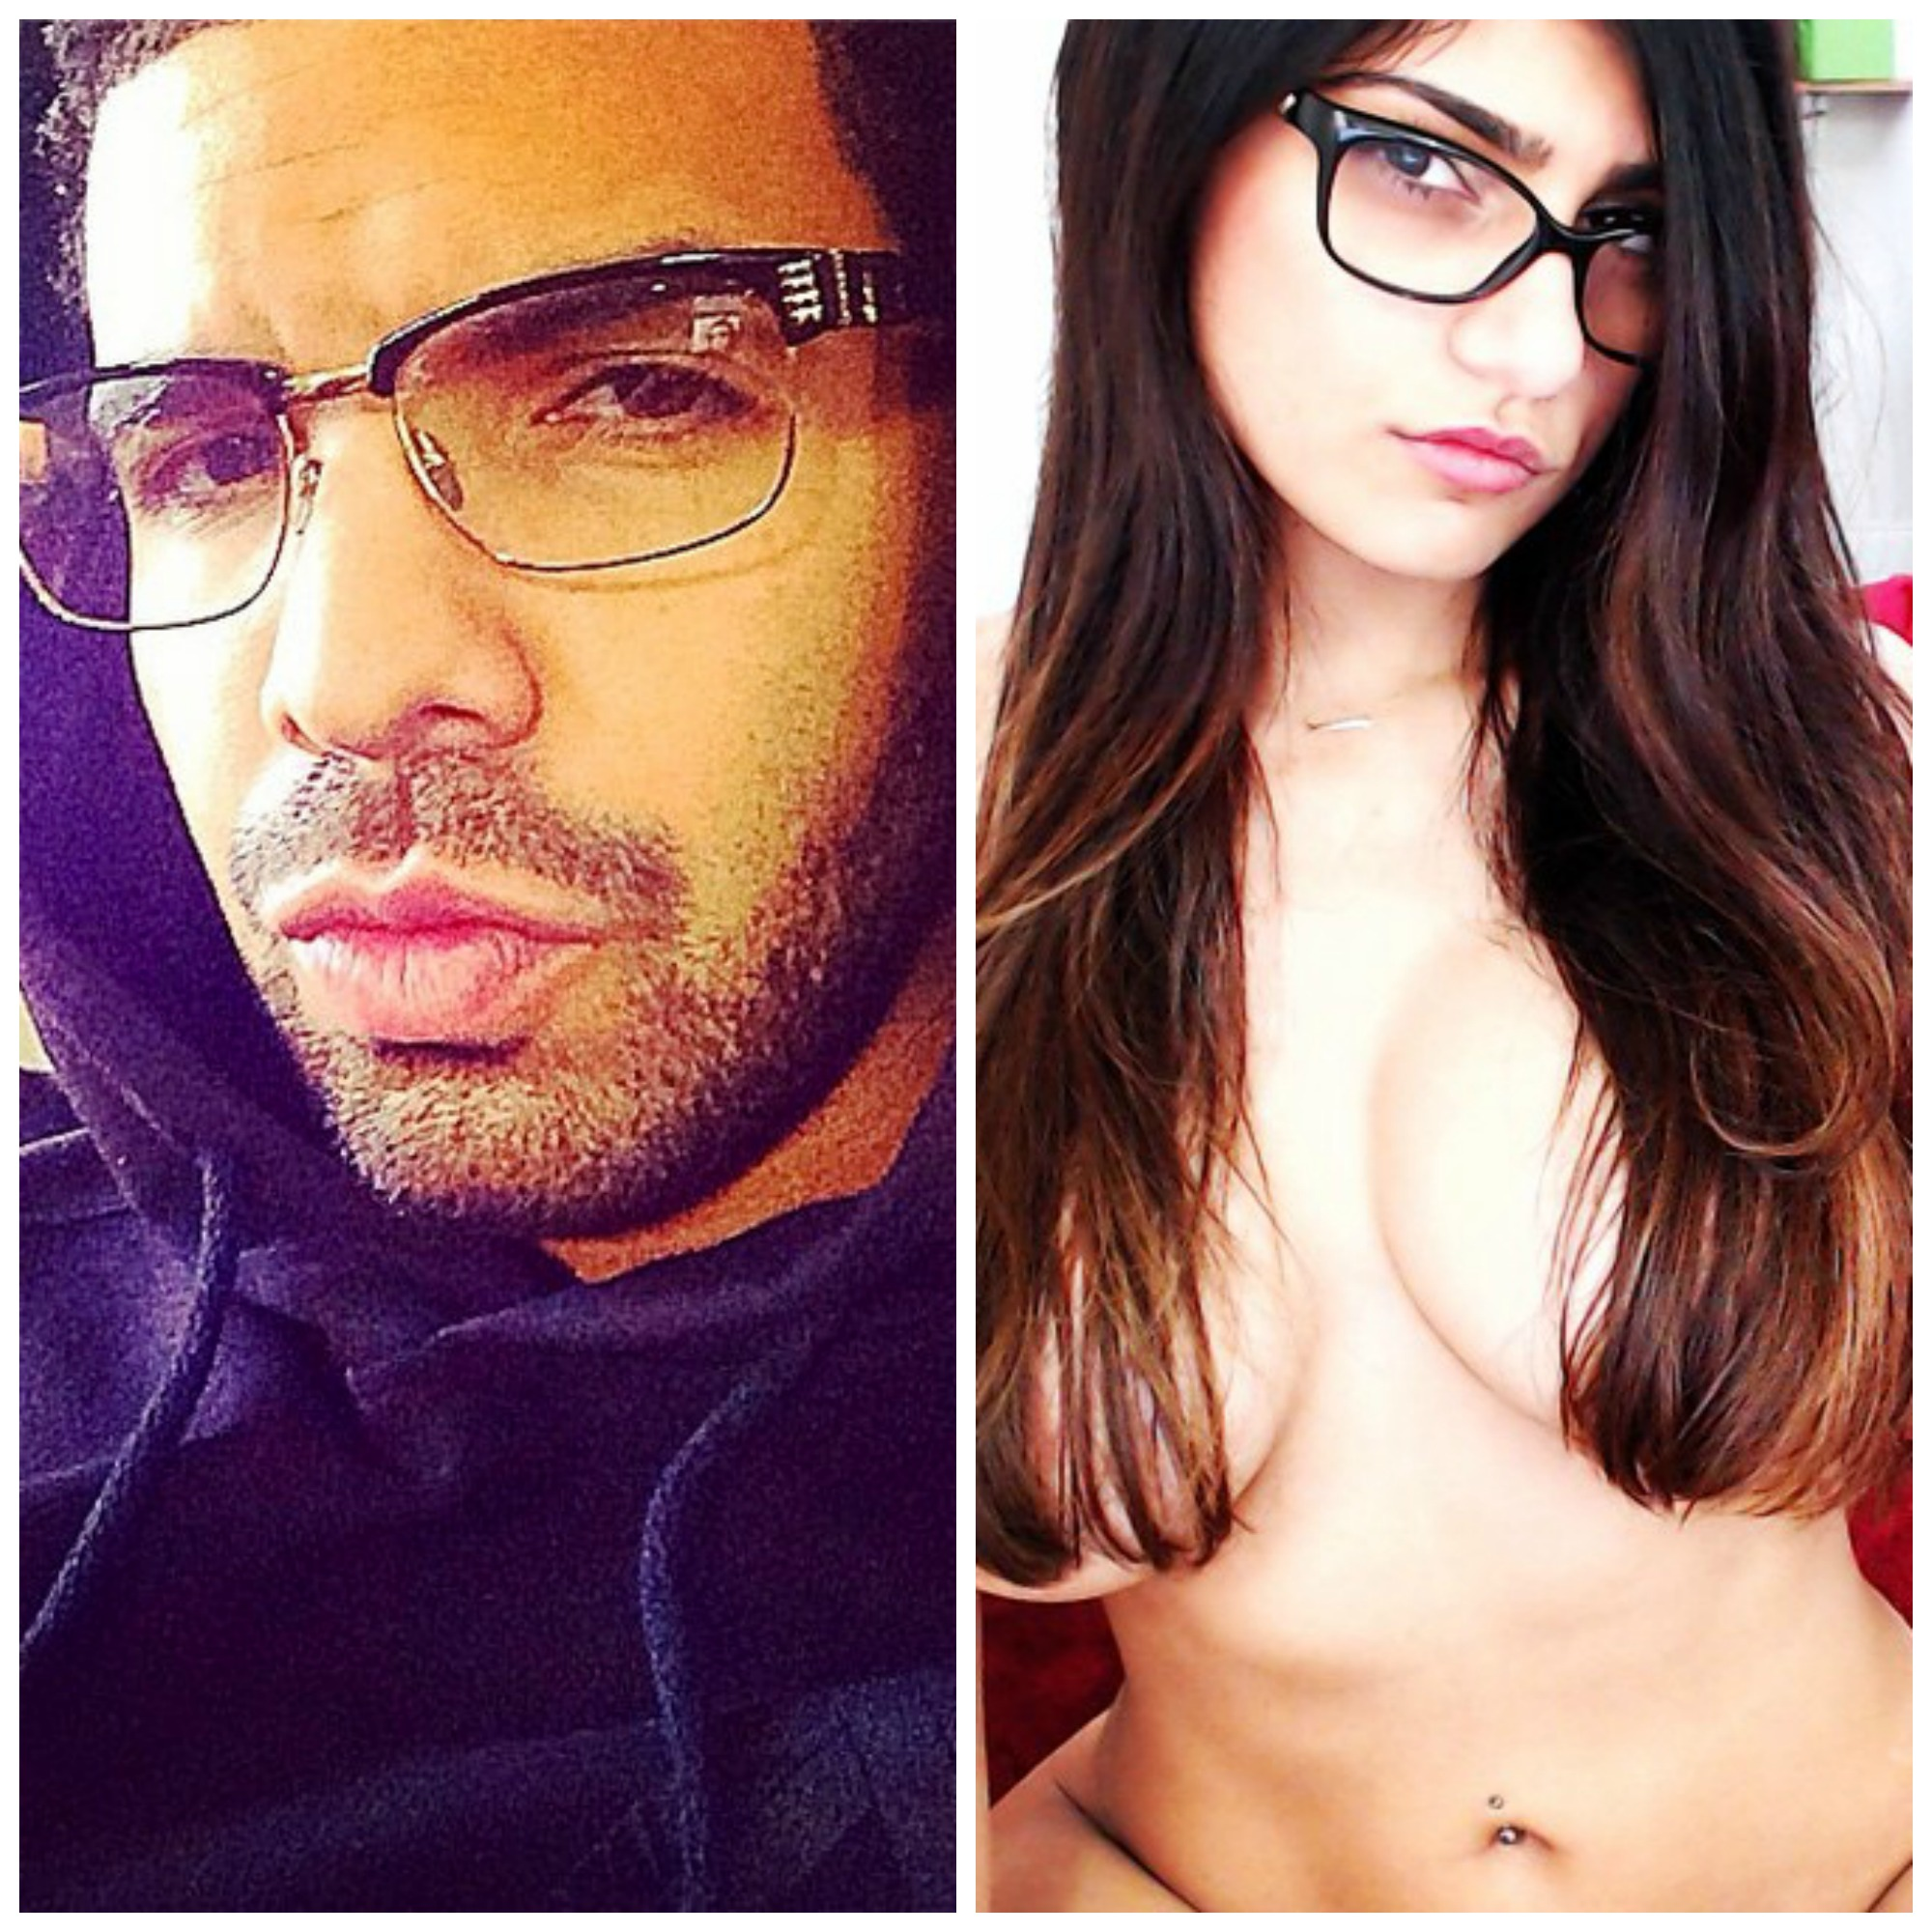 Drake and Mia Khalifa